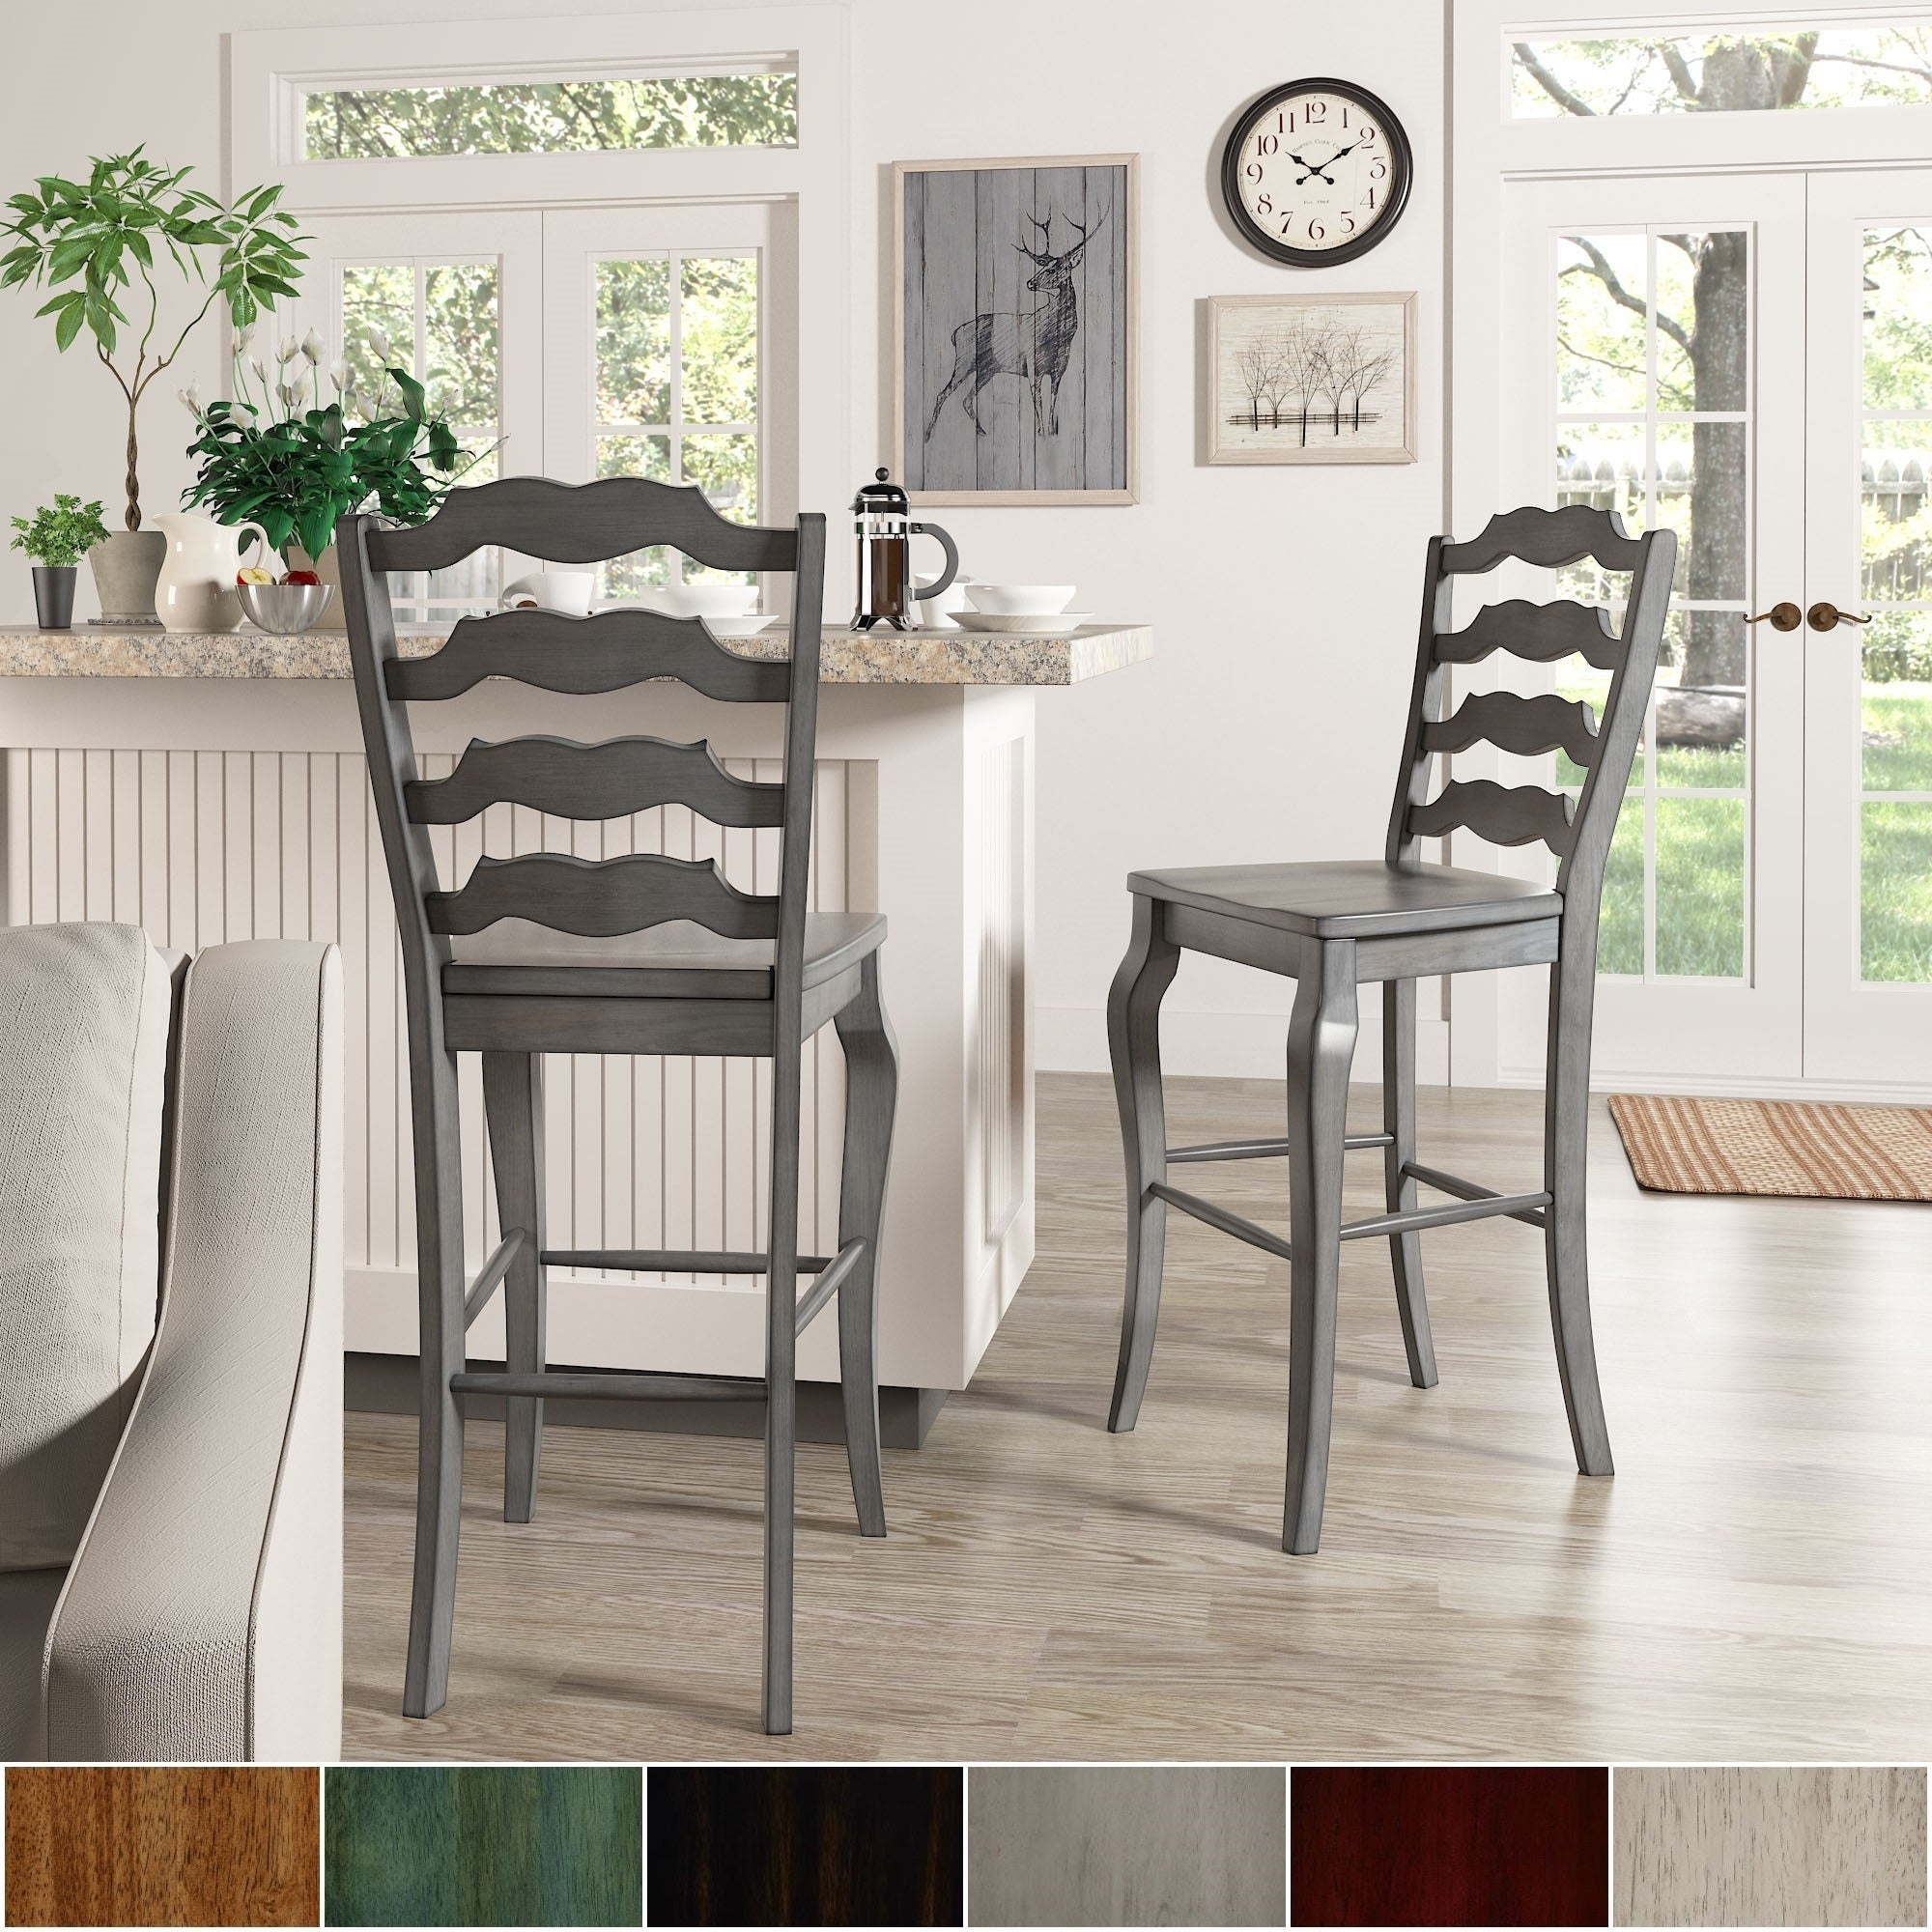 Eleanor French Ladder Back Bar Height Chairs Set Of 2 By Inspire Q Classic